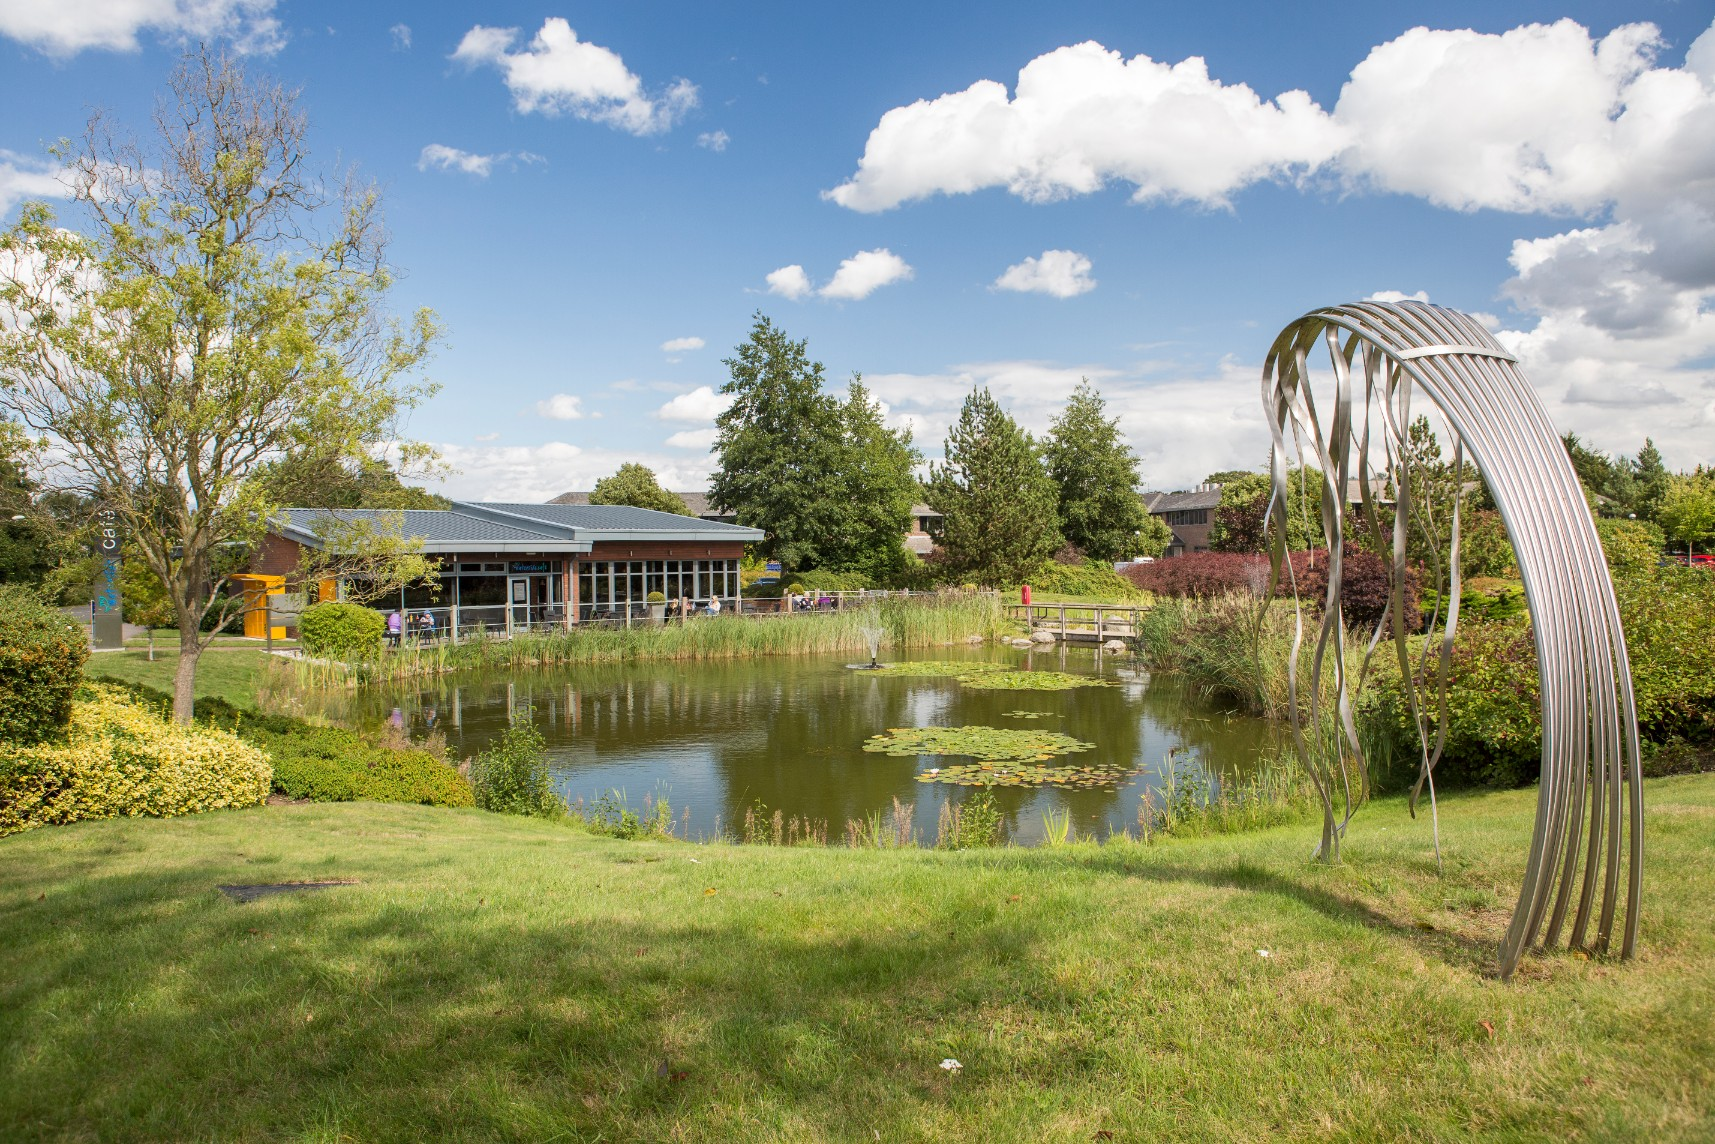 Lake and outdoor amenity at Croxley Business Park